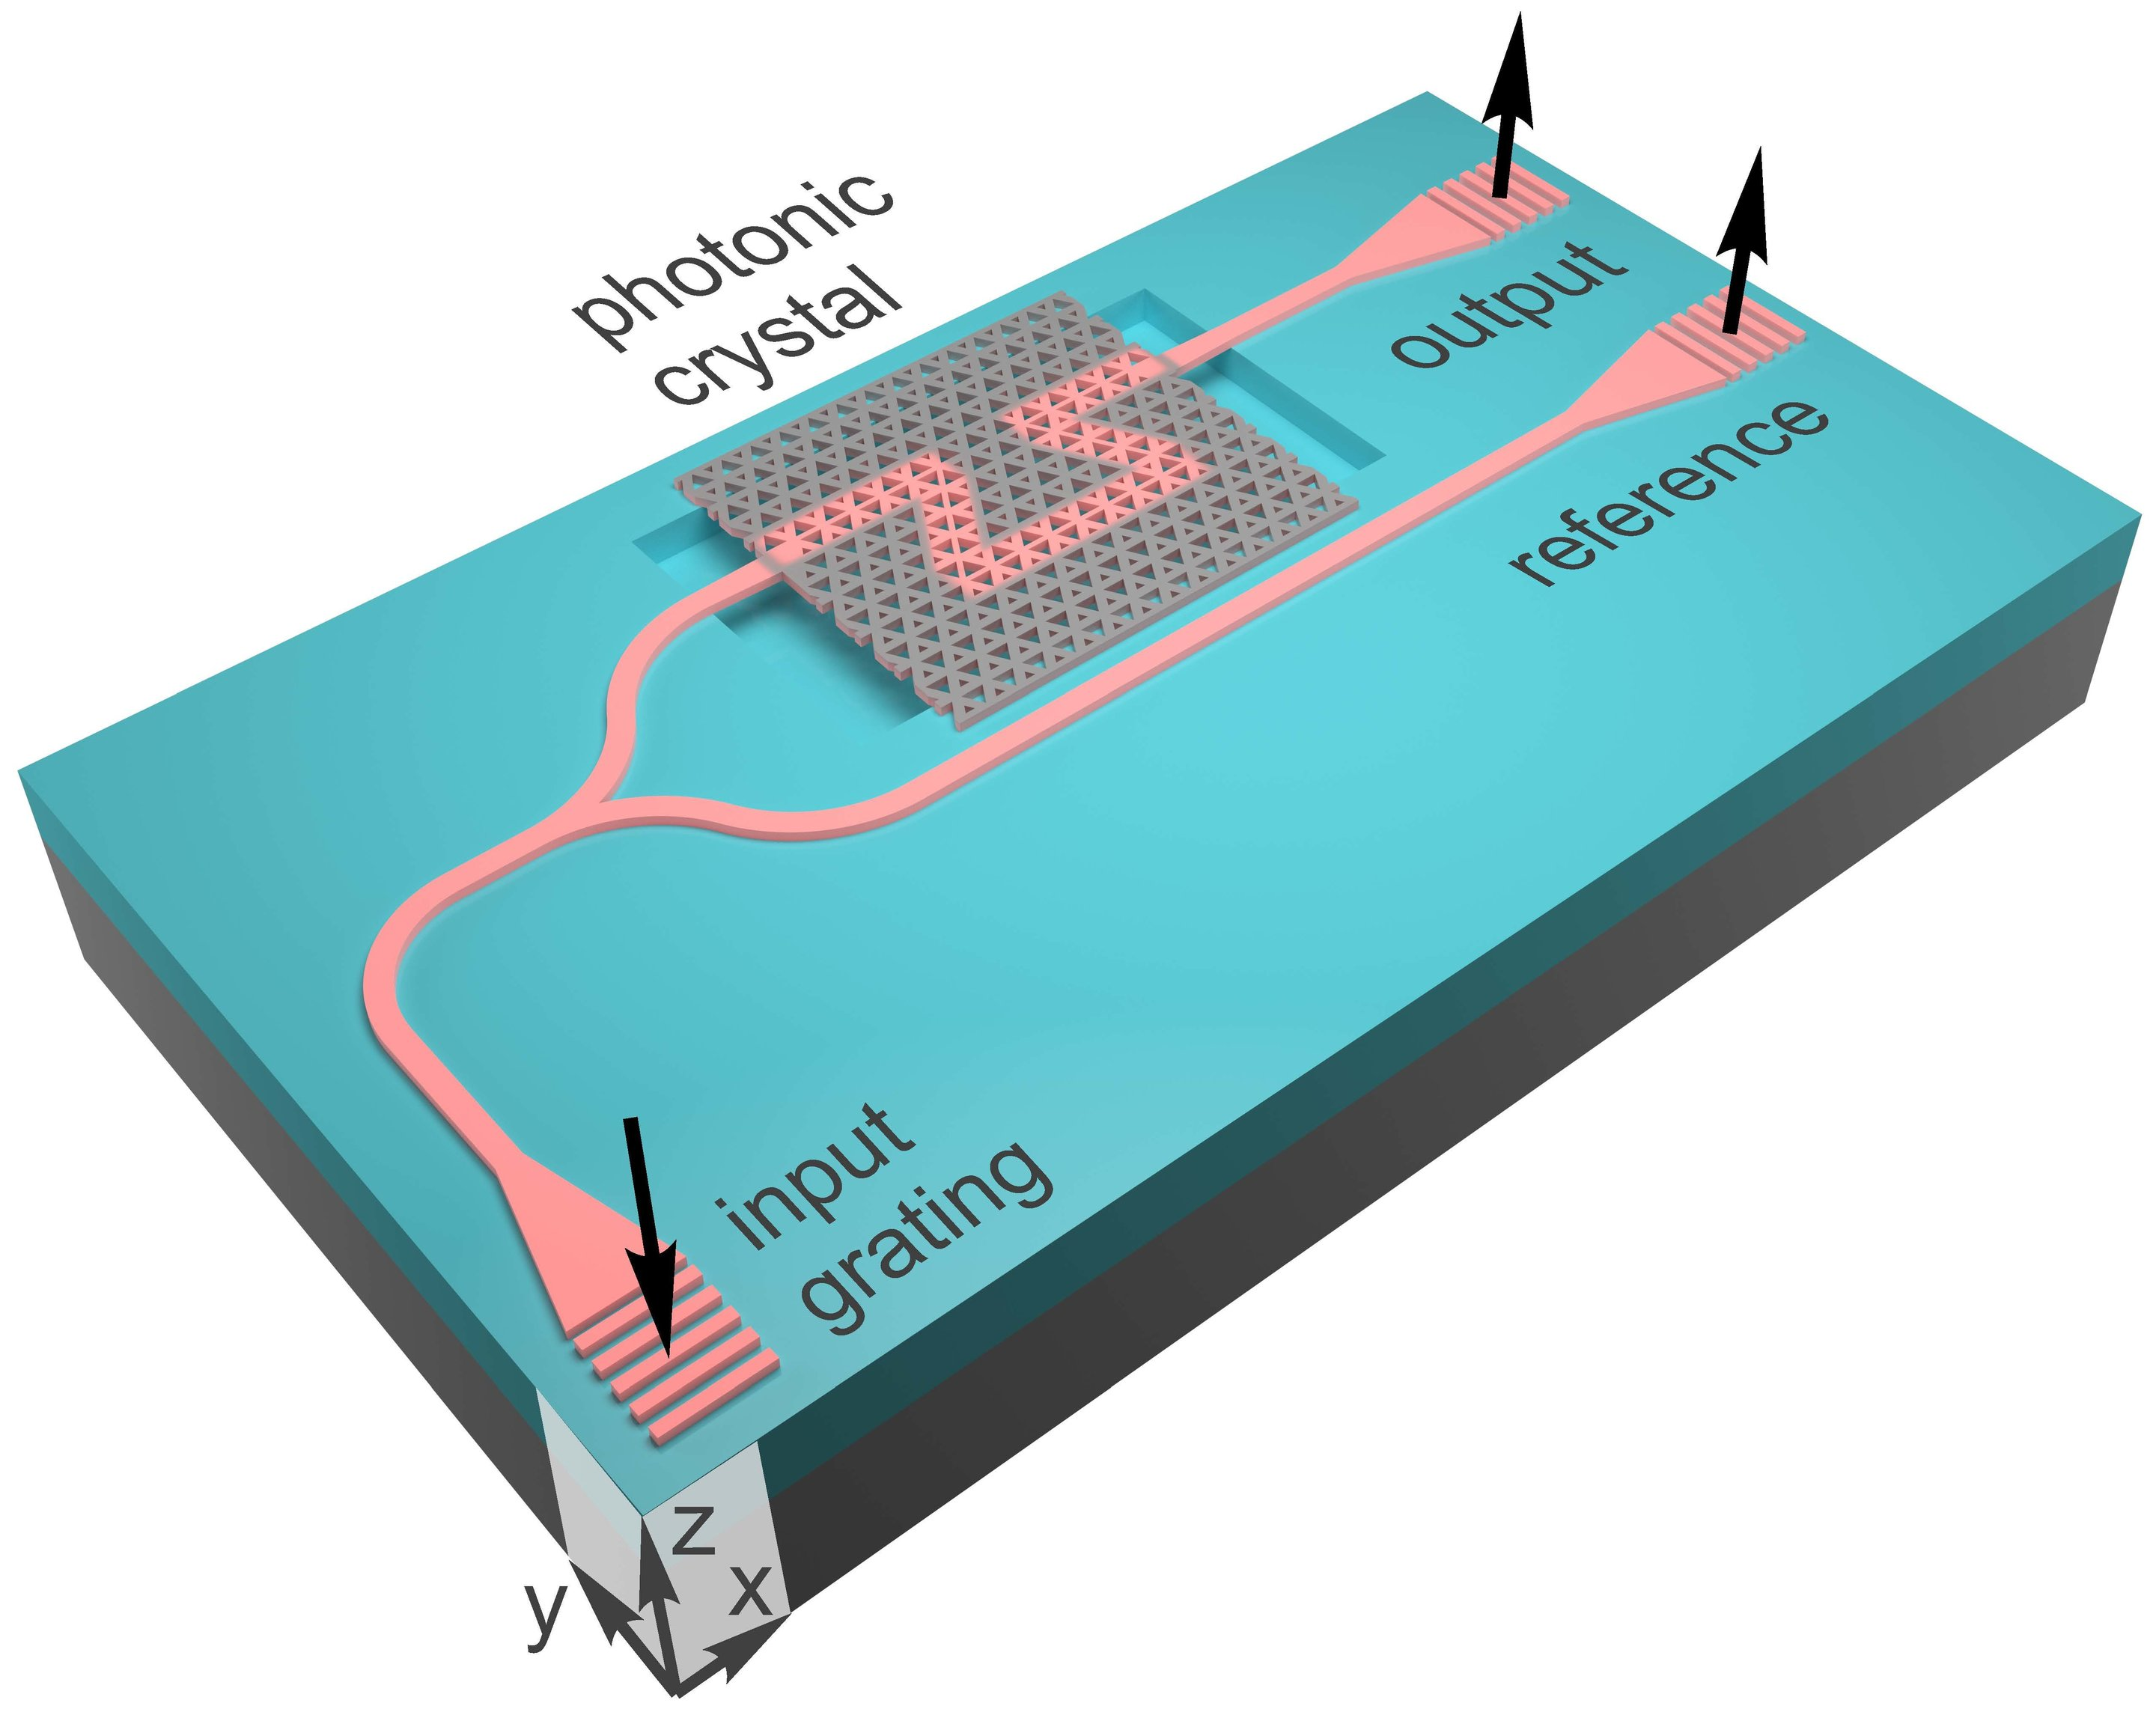 Bending light around tight corners without backscattering losses